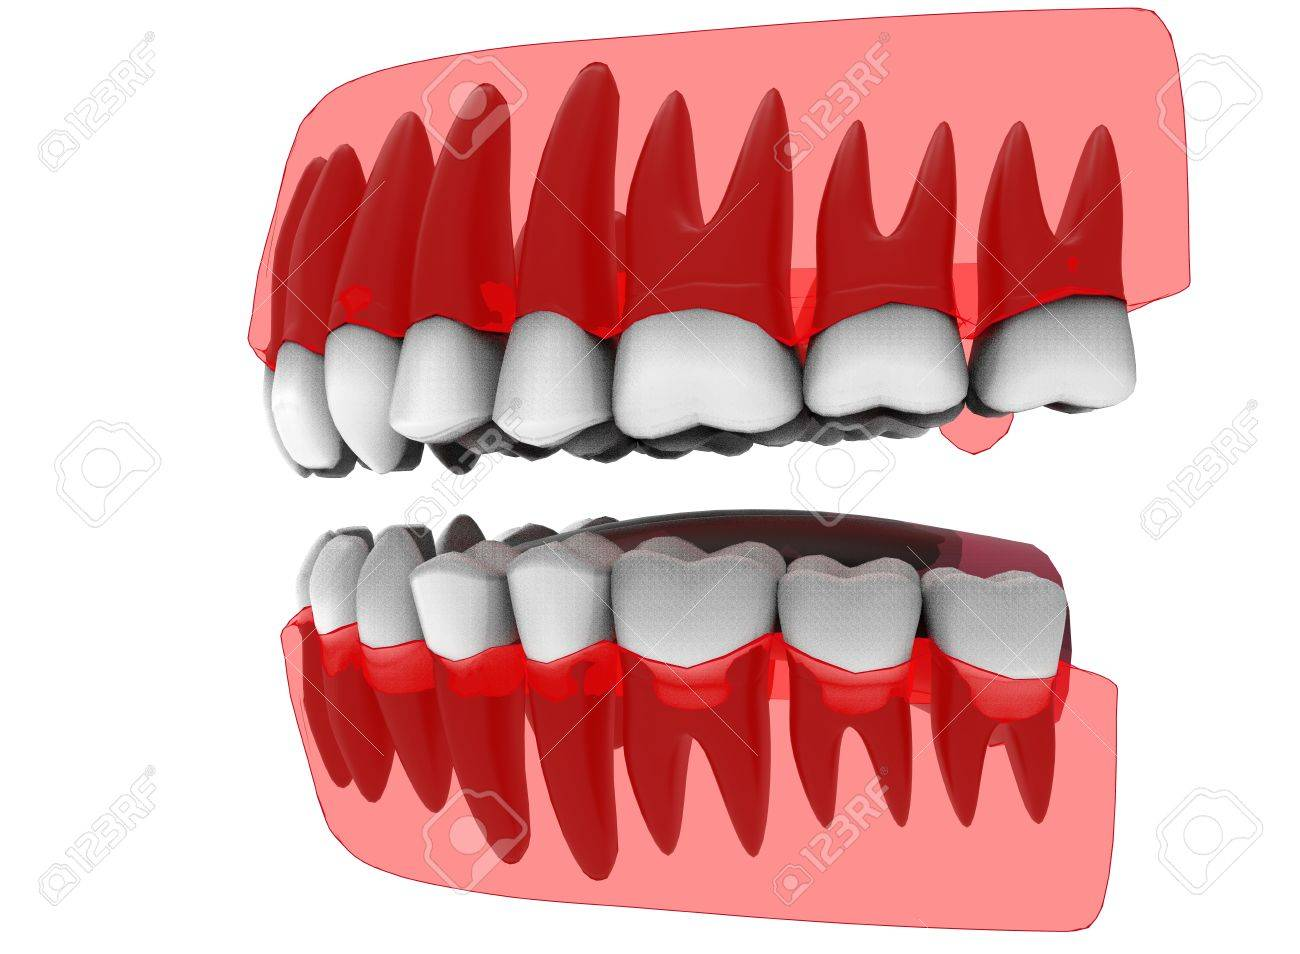 3d Illustration Of Closed Gum With Teeth And Tongue. Icon For ...